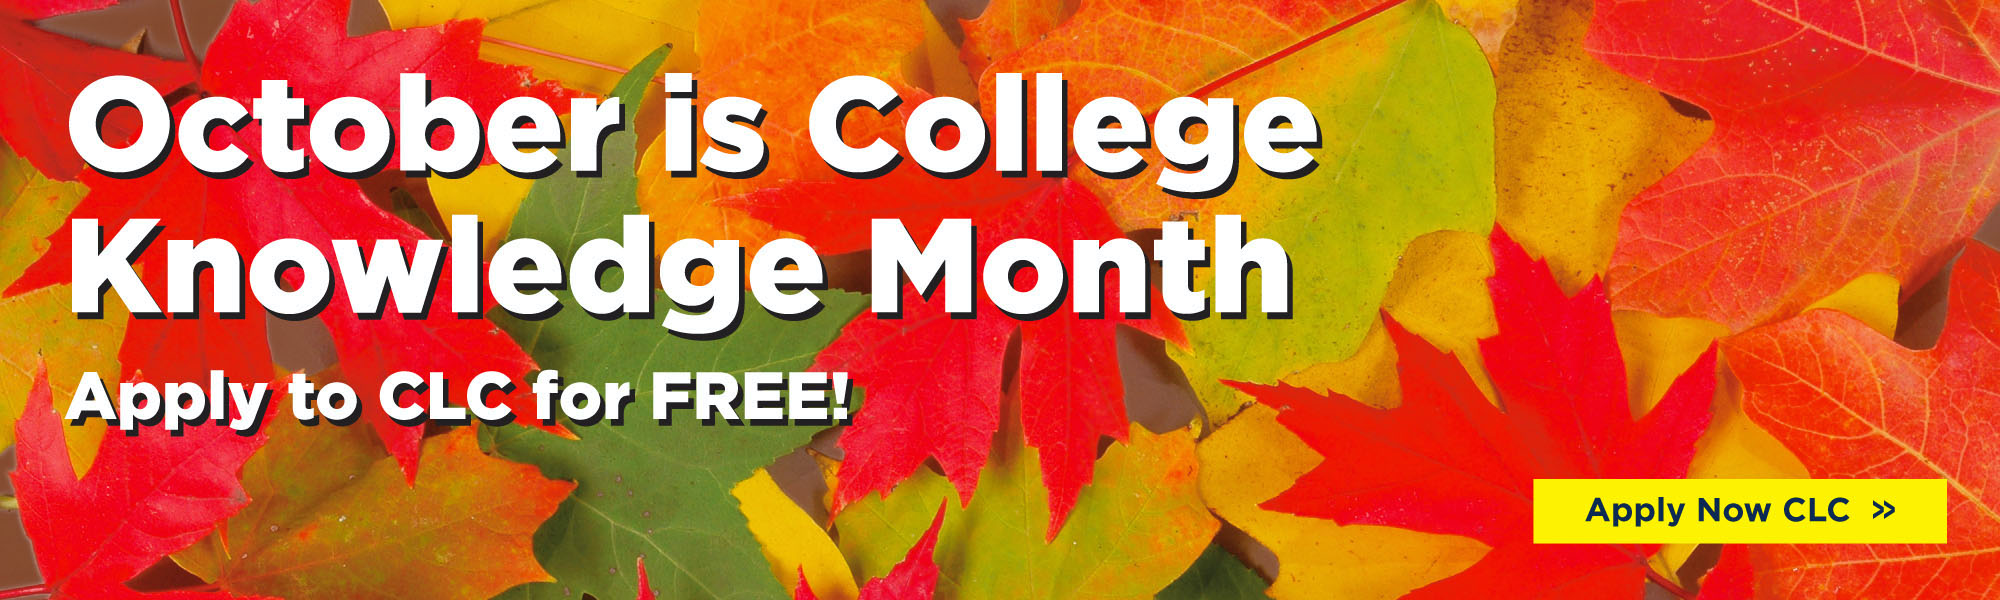 October college knowledge month